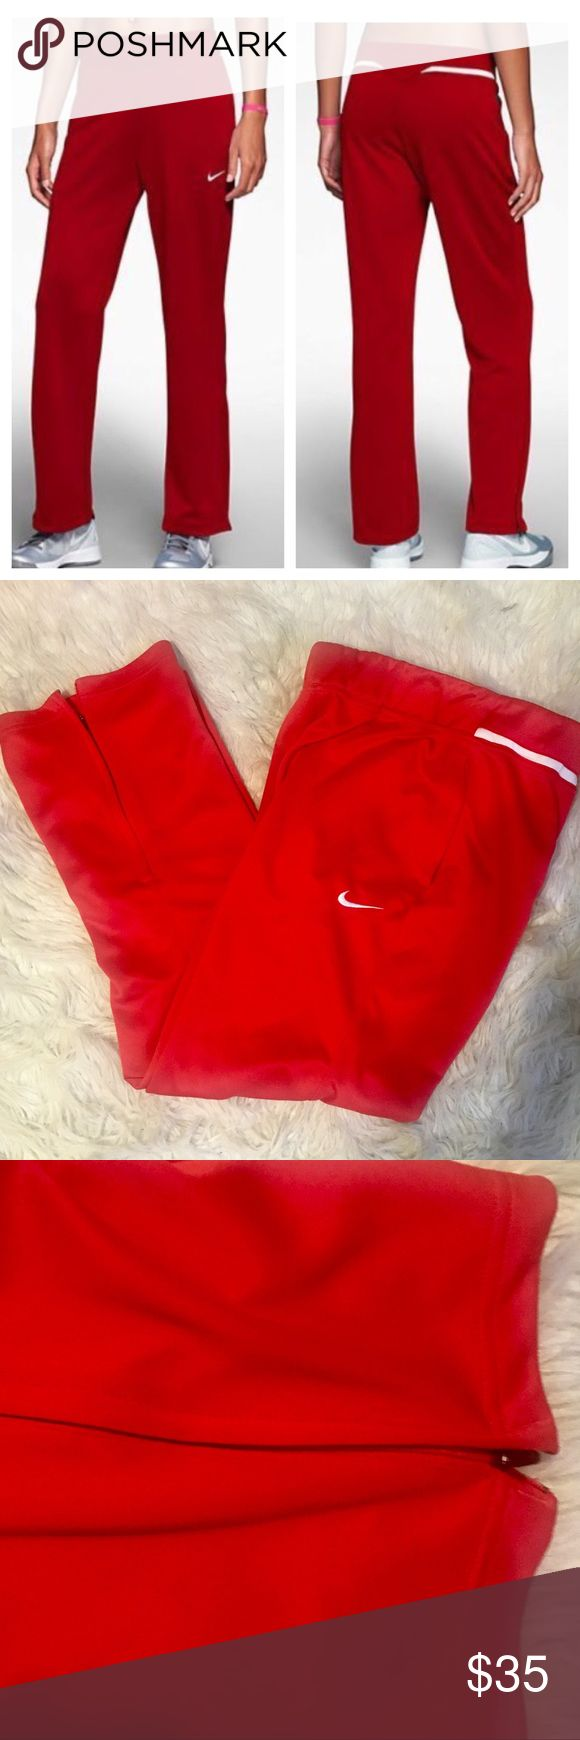 NWOT Nike dry fit Avenger pants New without tags. VERSATILE, DRI-FIT COMFORT The Nike Avenger Knit Women's Training Pants are made with durable fabric that lifts sweat away from the skin and zip vents at the hem for a comfortable fit and easy changing over footwear. BENEFITS Dri-FIT fabric to wick sweat away and help keep you dry and comfortable Wide stretch waistband with interior drawcord for a snug, adjustable fit Open hem with zip vents. Side zip pockets for secure storage Fabric…